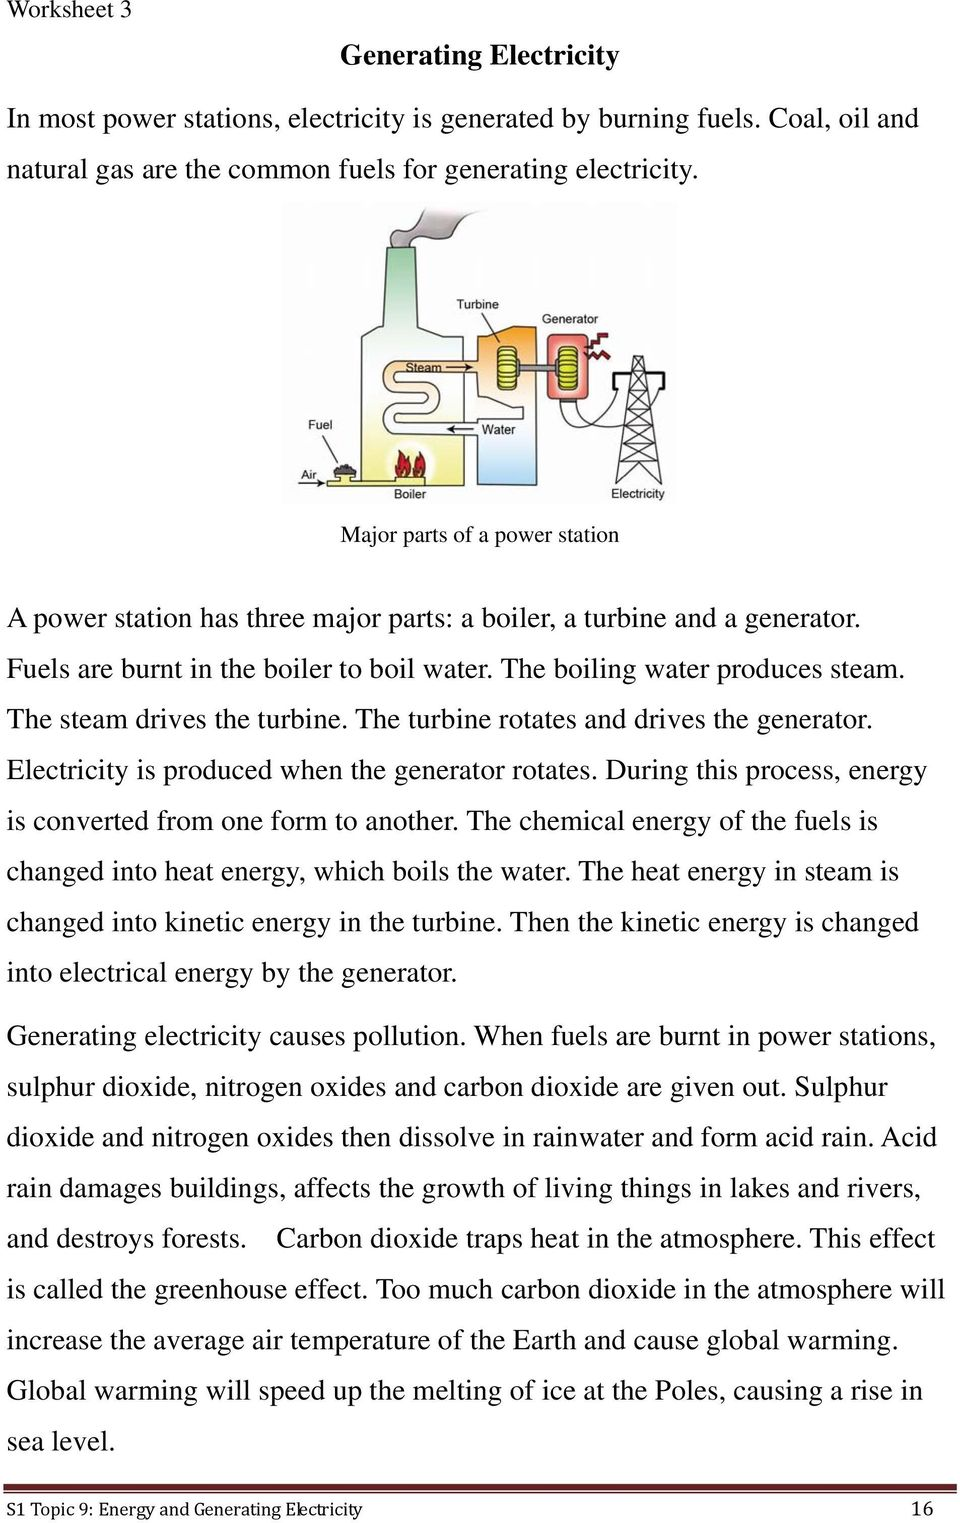 The steam drives the turbine. The turbine rotates and drives the generator. Electricity is produced when the generator rotates. During this process, energy is converted from one form to another.